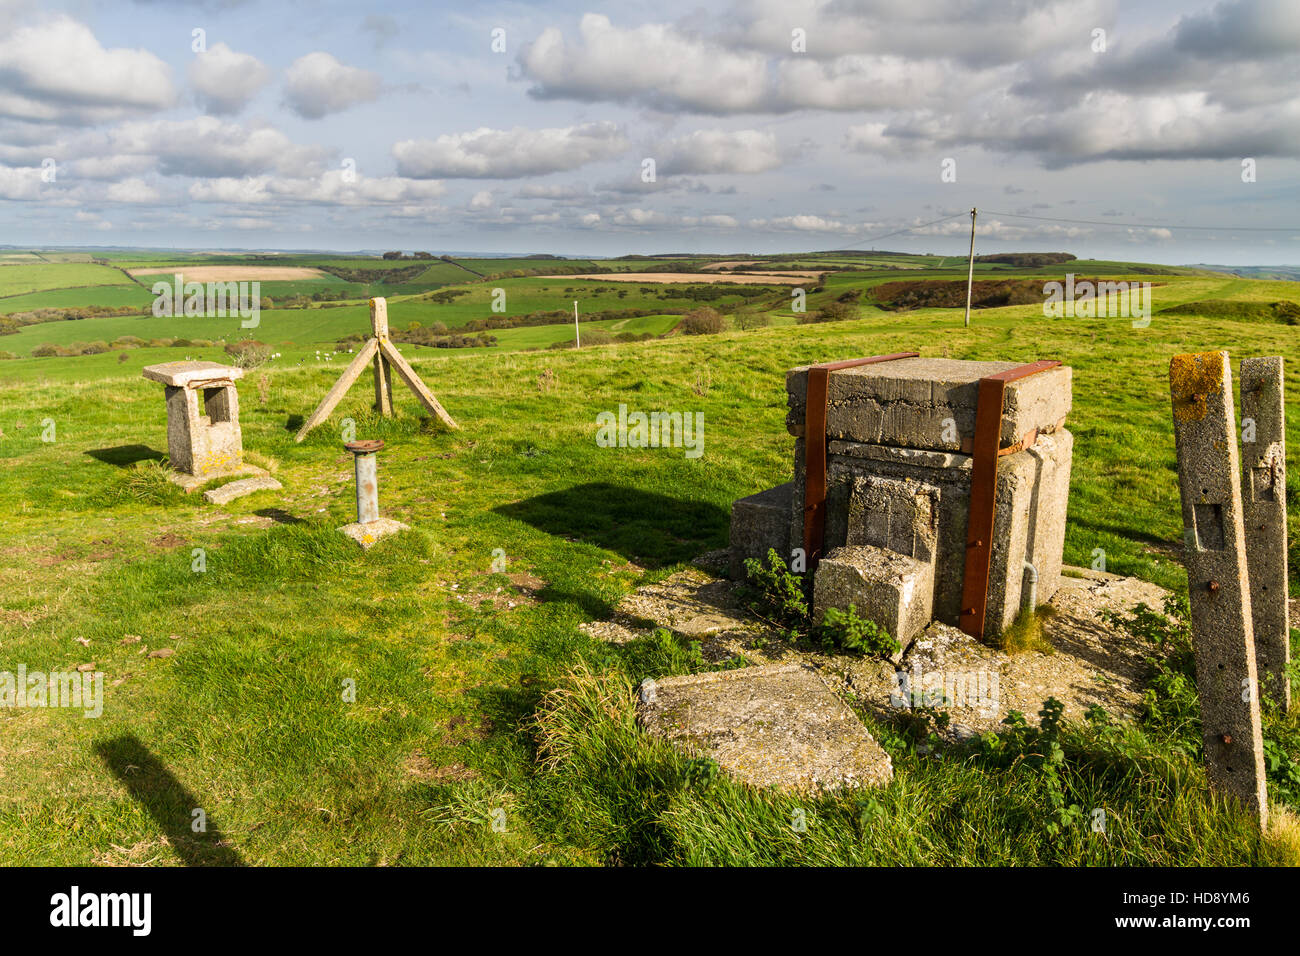 Royal Observer Corps post, Cold War underground bunker to monitor after nuclear attack. Abbotsbury, Dorset, England, - Stock Image